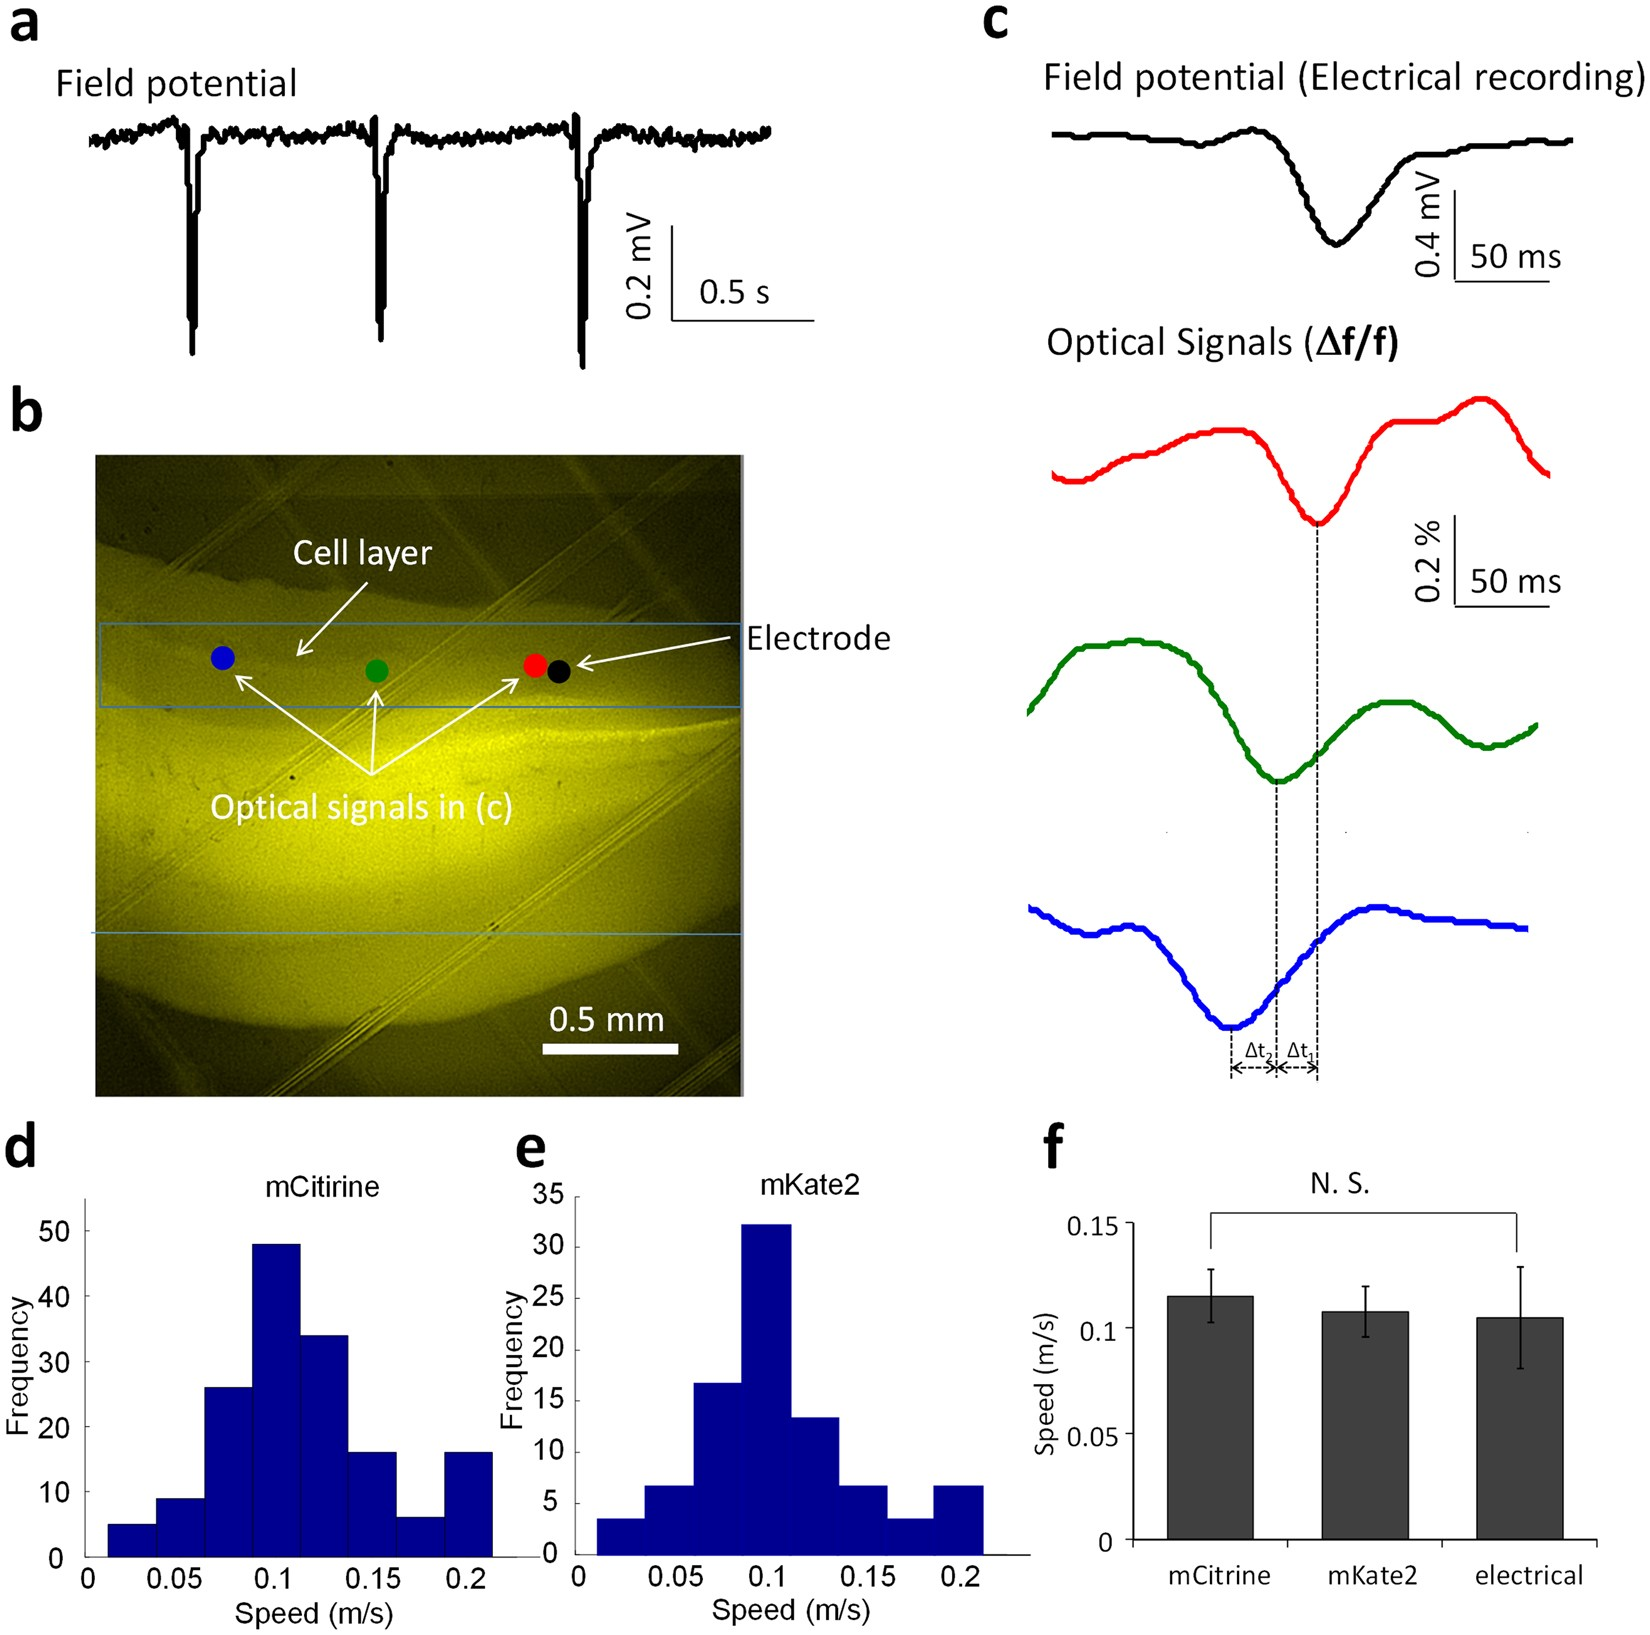 Slow Moving Neural Source In The Epileptic Hippocampus Can Mimic Led Characteristics Public Circuit Online Simulator Progression Of Human Seizures Scientific Reports